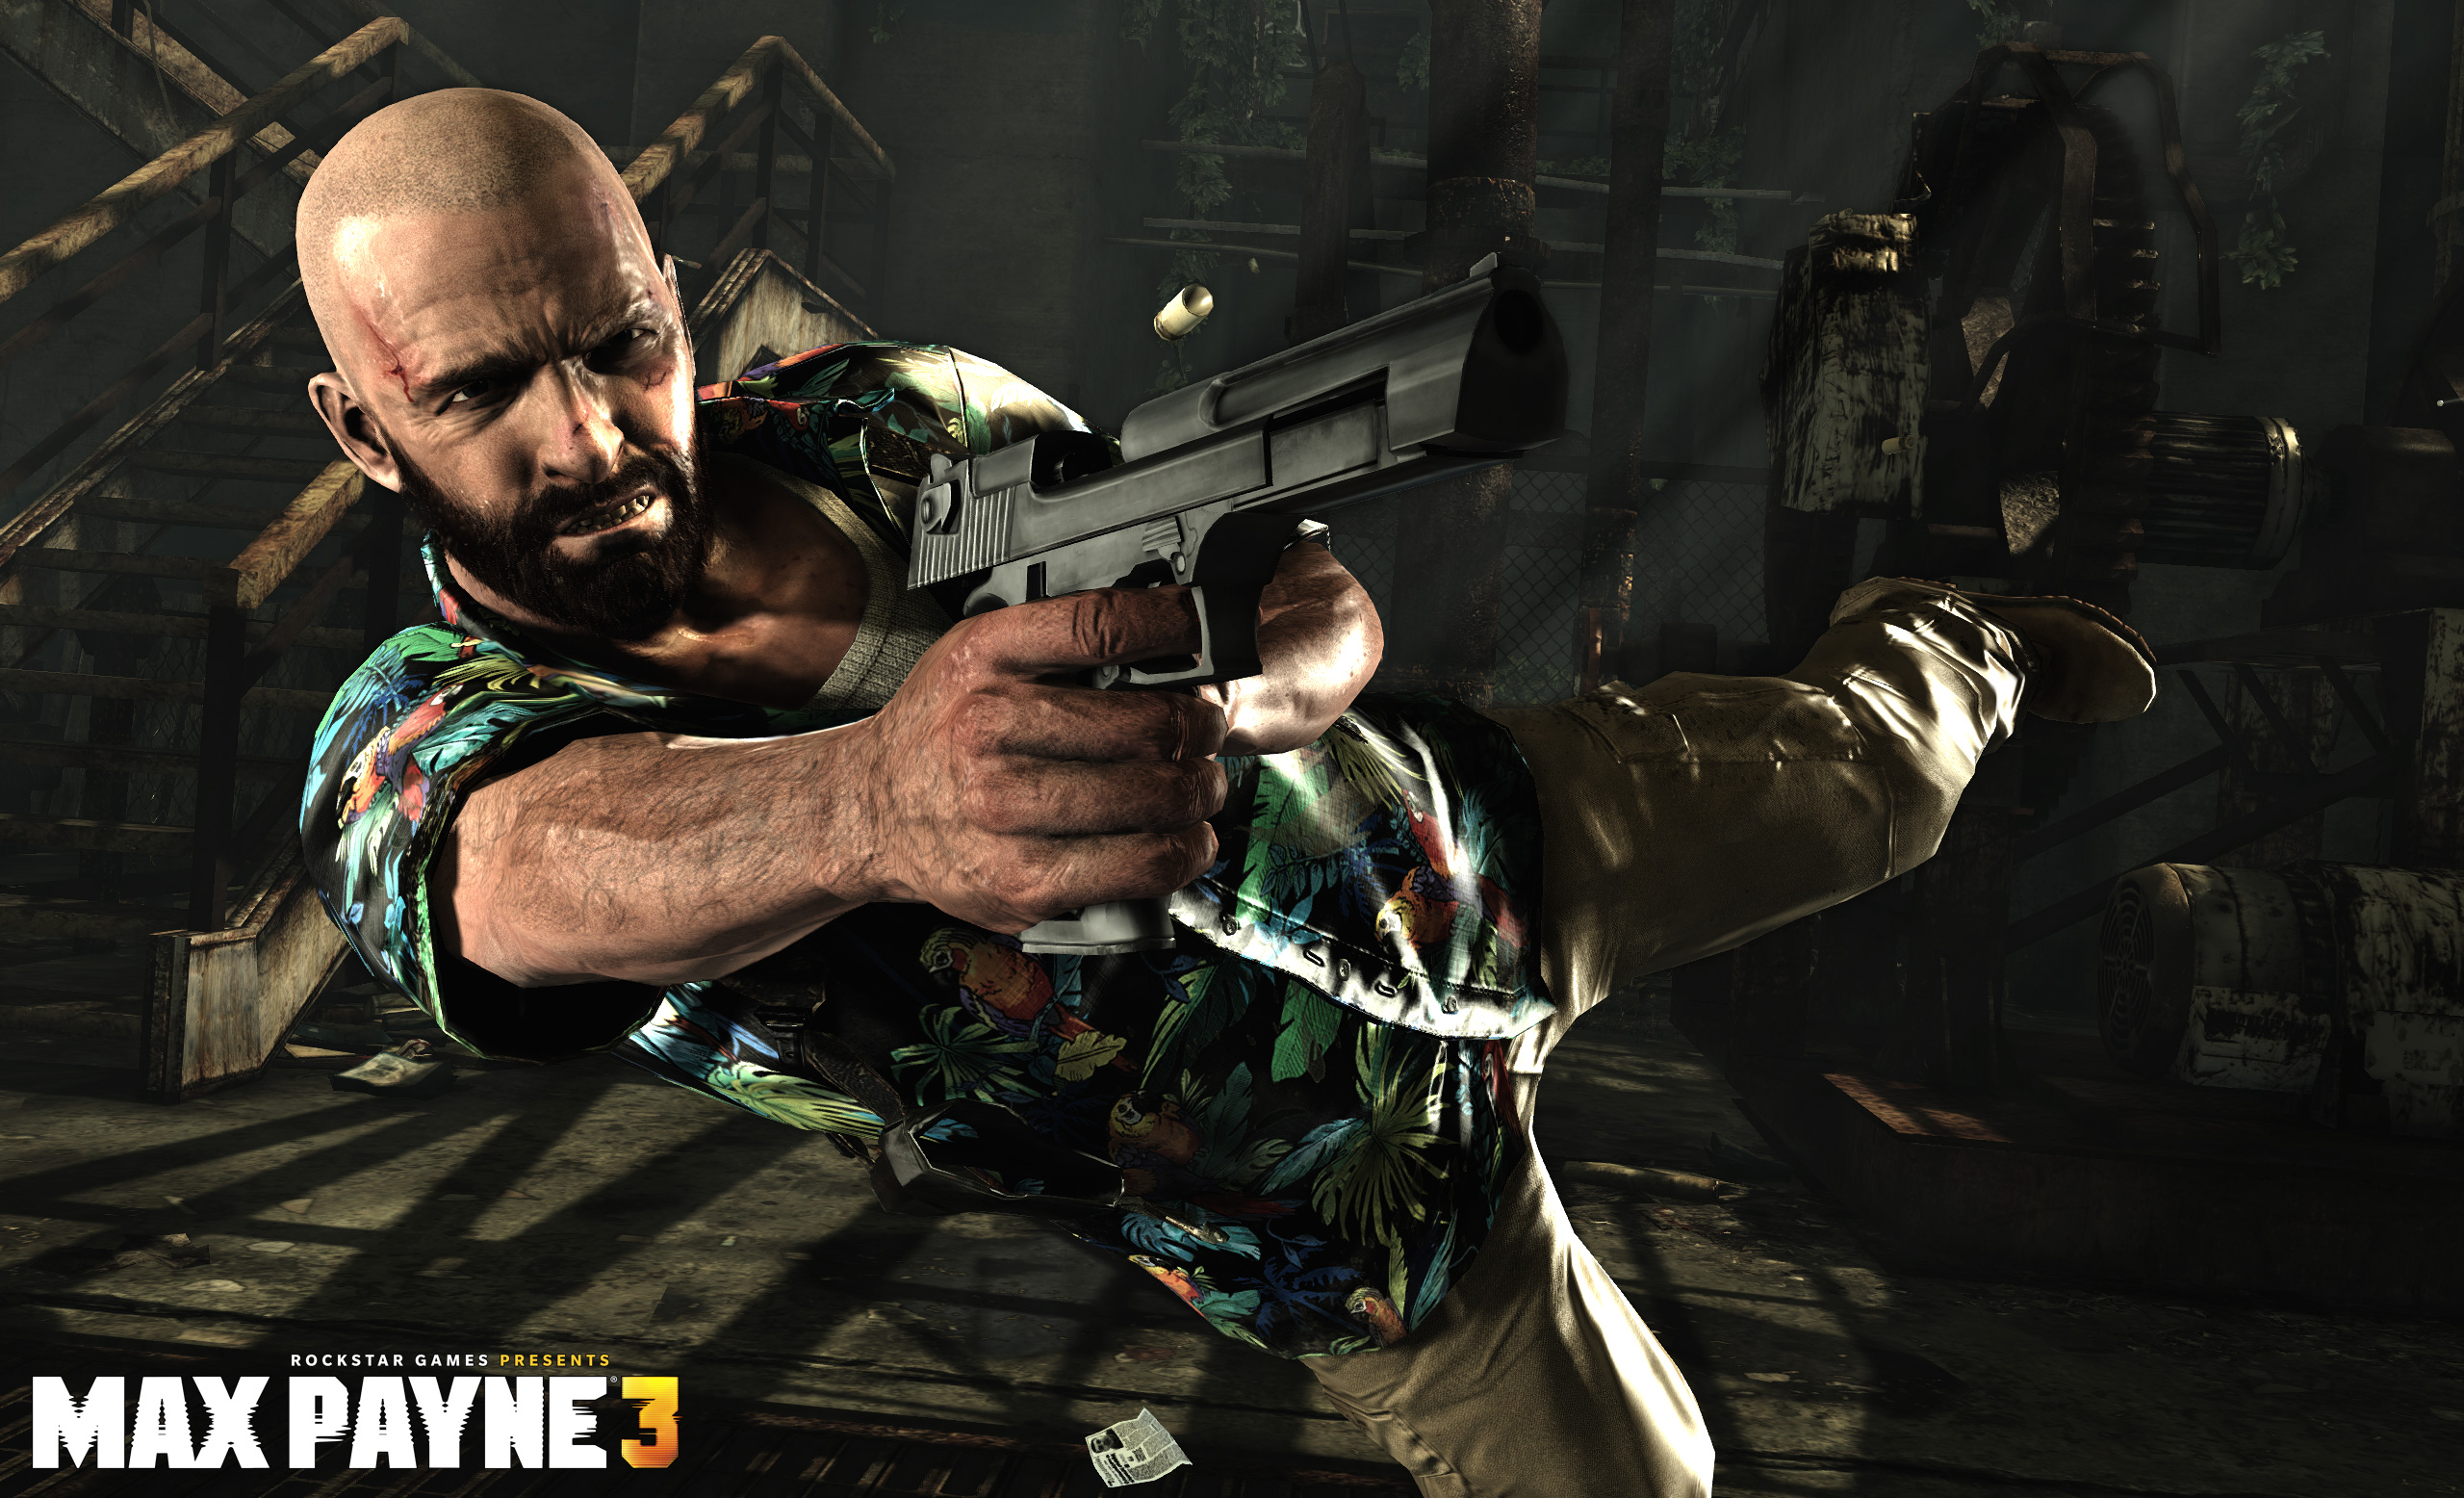 Max Payne 3 for PC New Screens and Details Including System Specs and 2560x1556